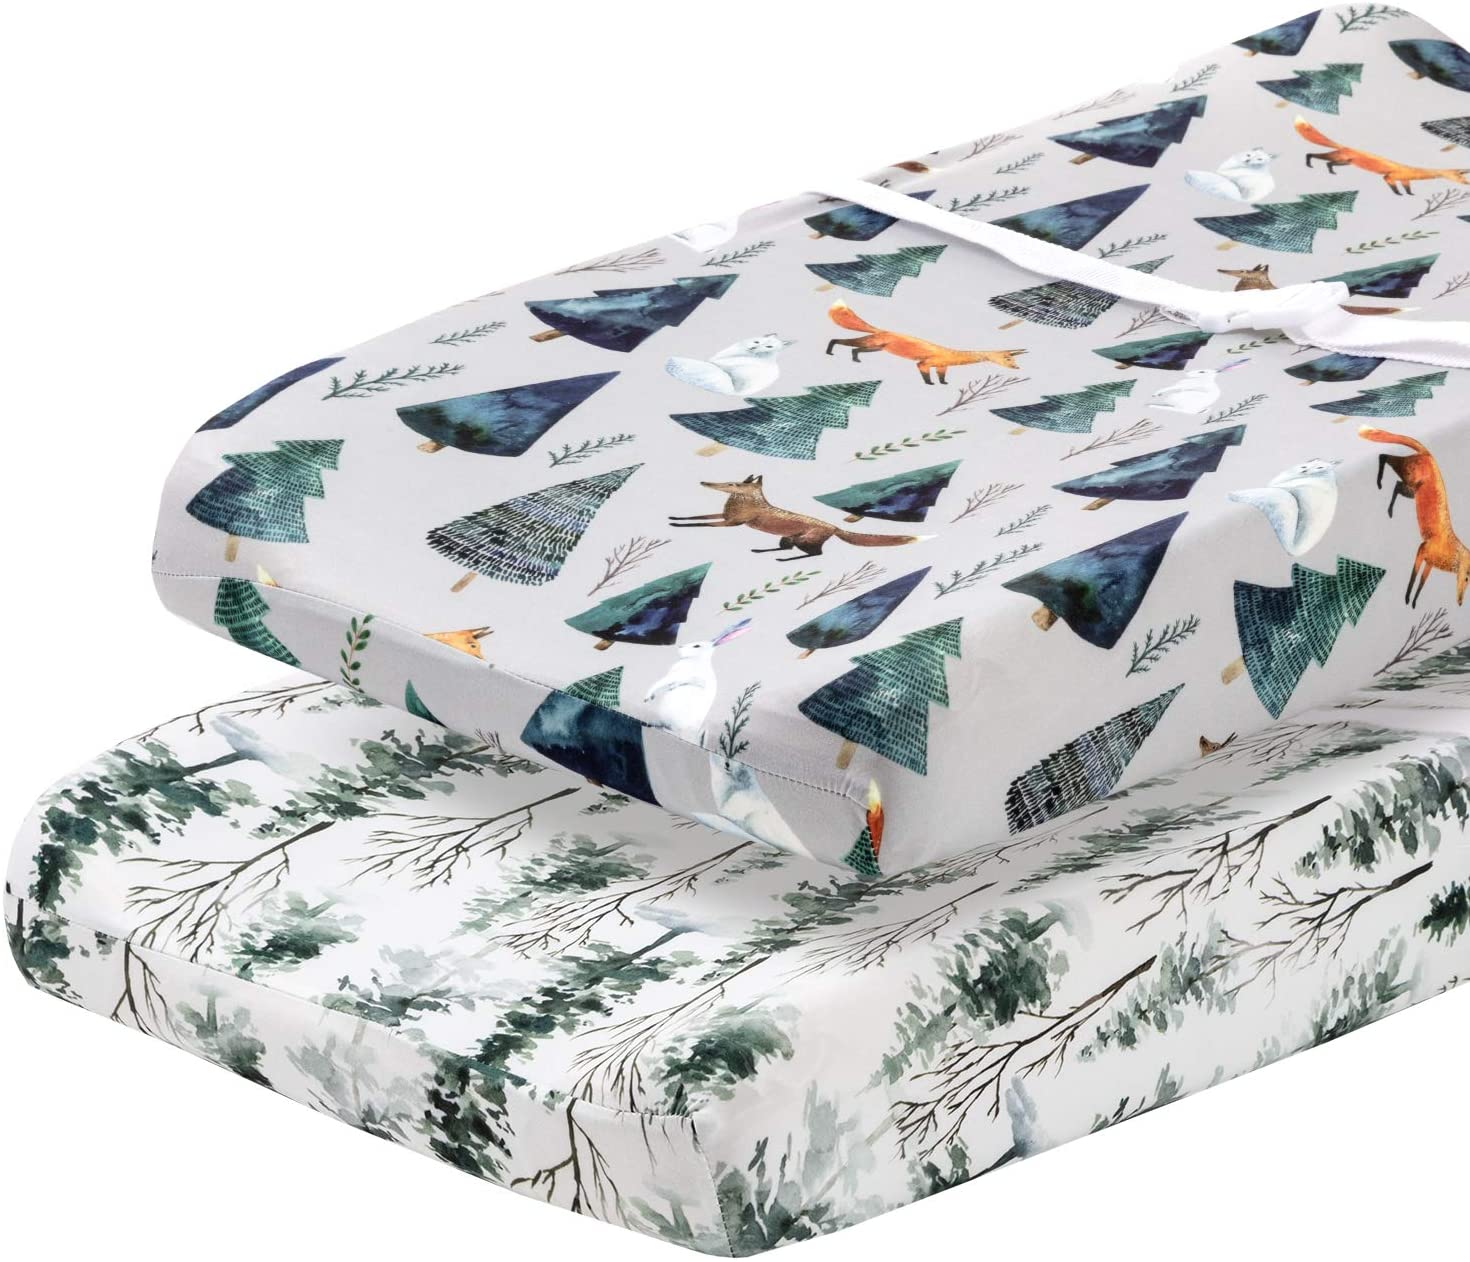 Magical Ultra-Soft Cotton Blend Safe and Snug for Baby Pobi Baby Stylish Animal Woodland Pattern 2 Pack Premium Bassinet Sheets for Standard Bassinets